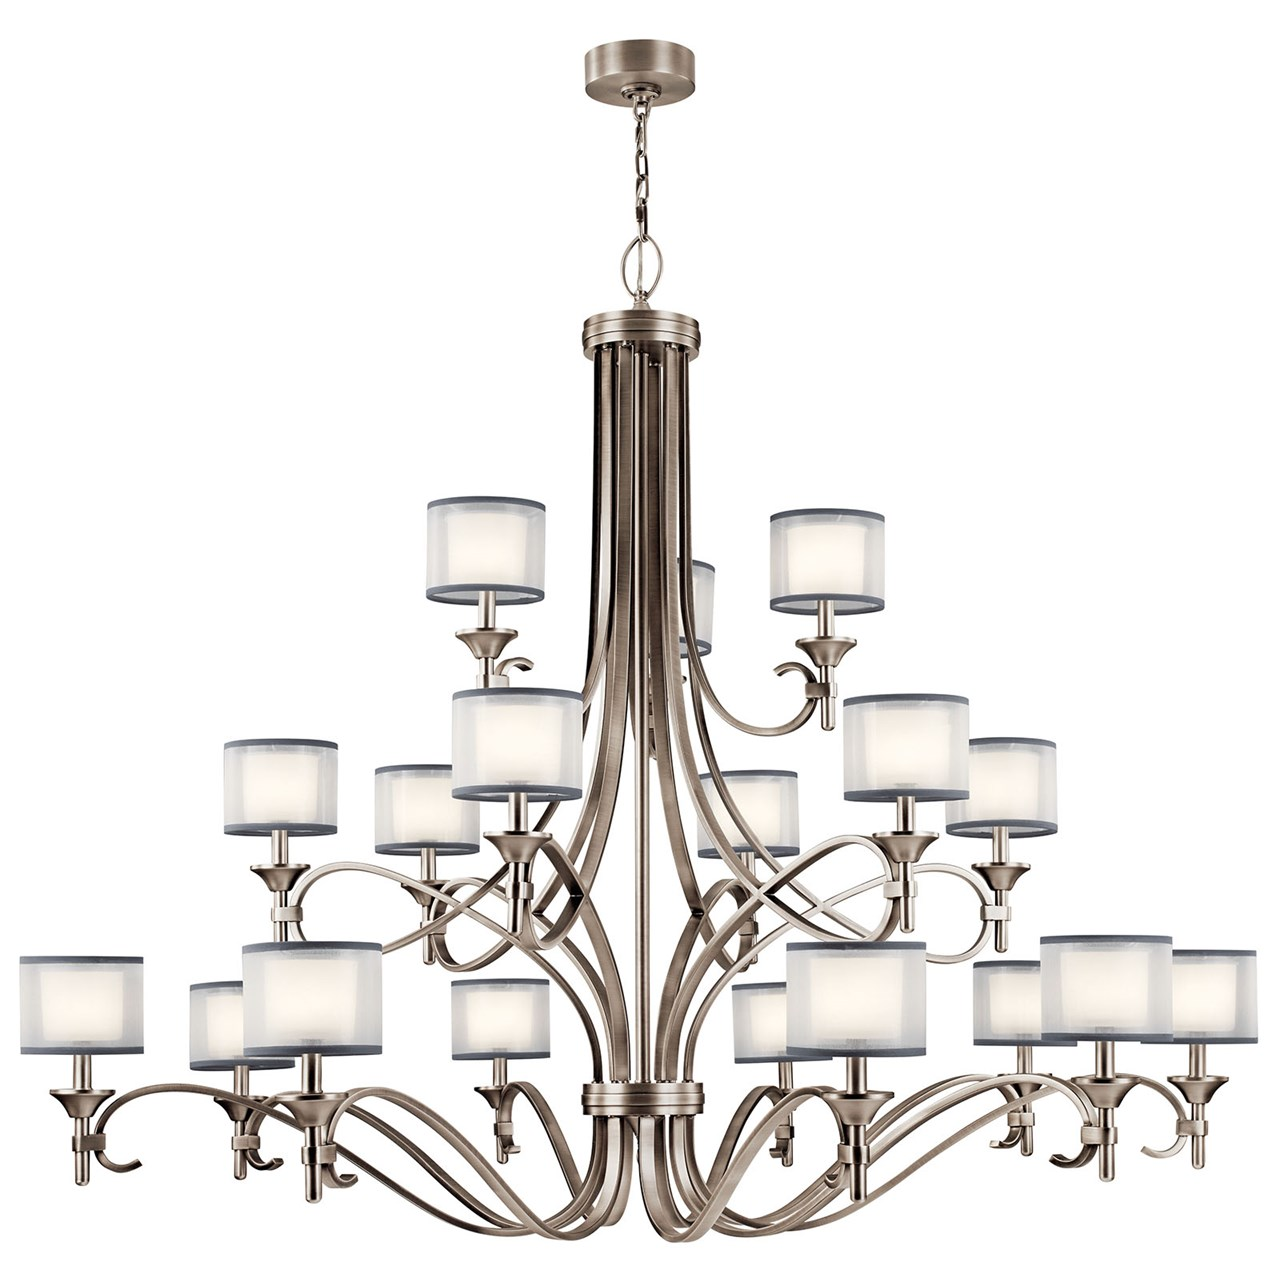 Lacey 18 Light Grand Chandelier Antique Pewter